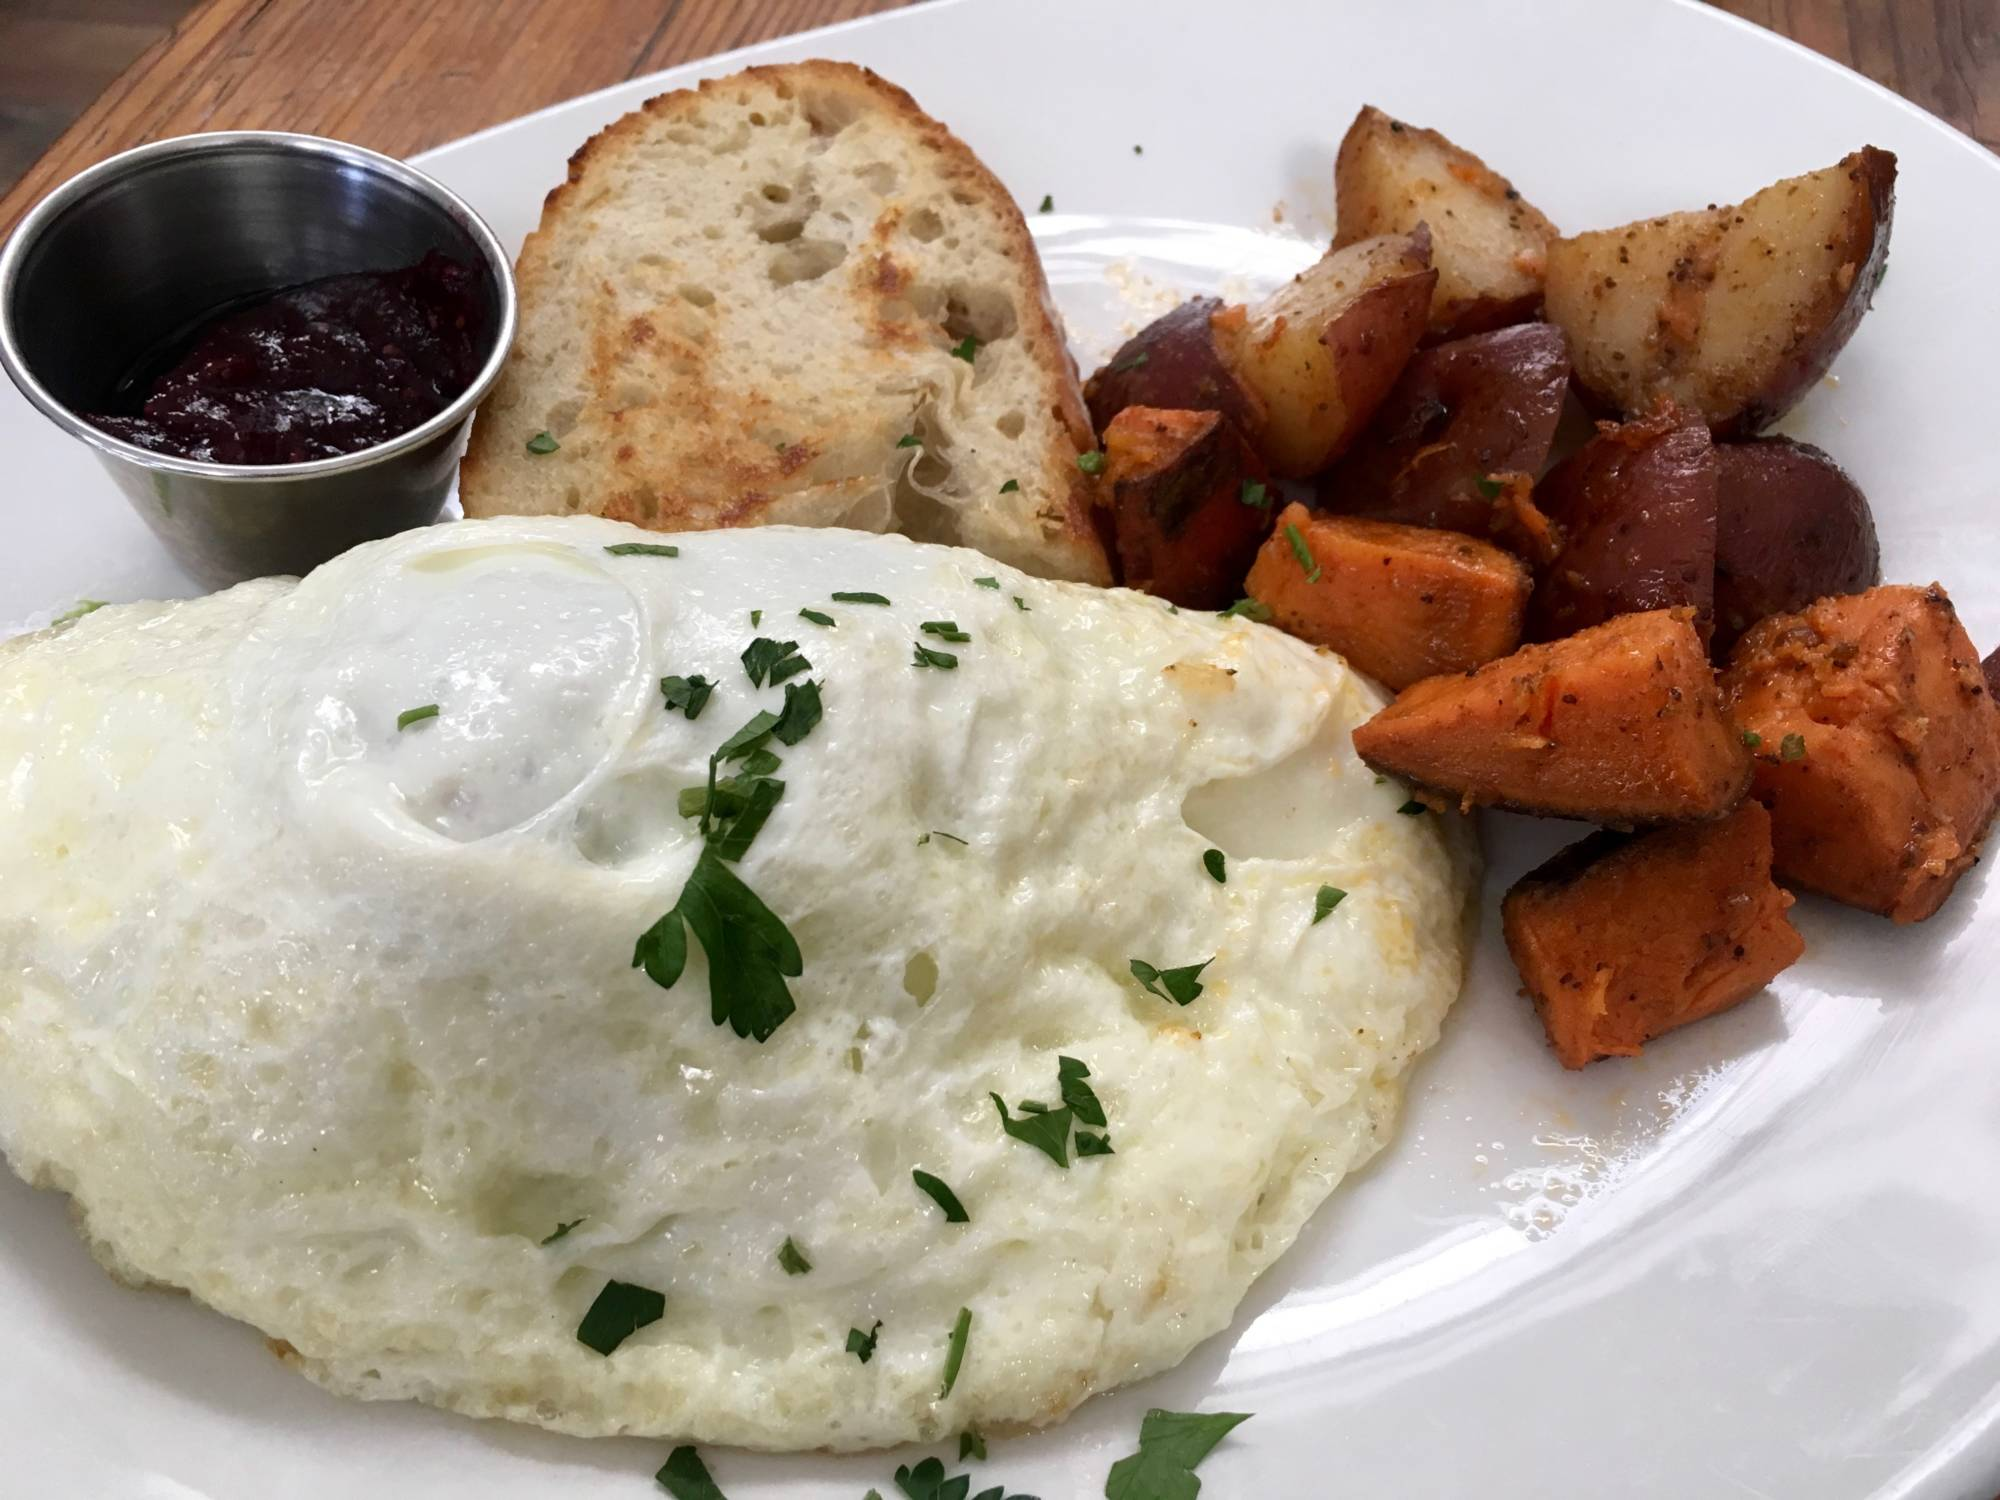 The Diestel Turkey Egg White Omelet at Local Union 271.